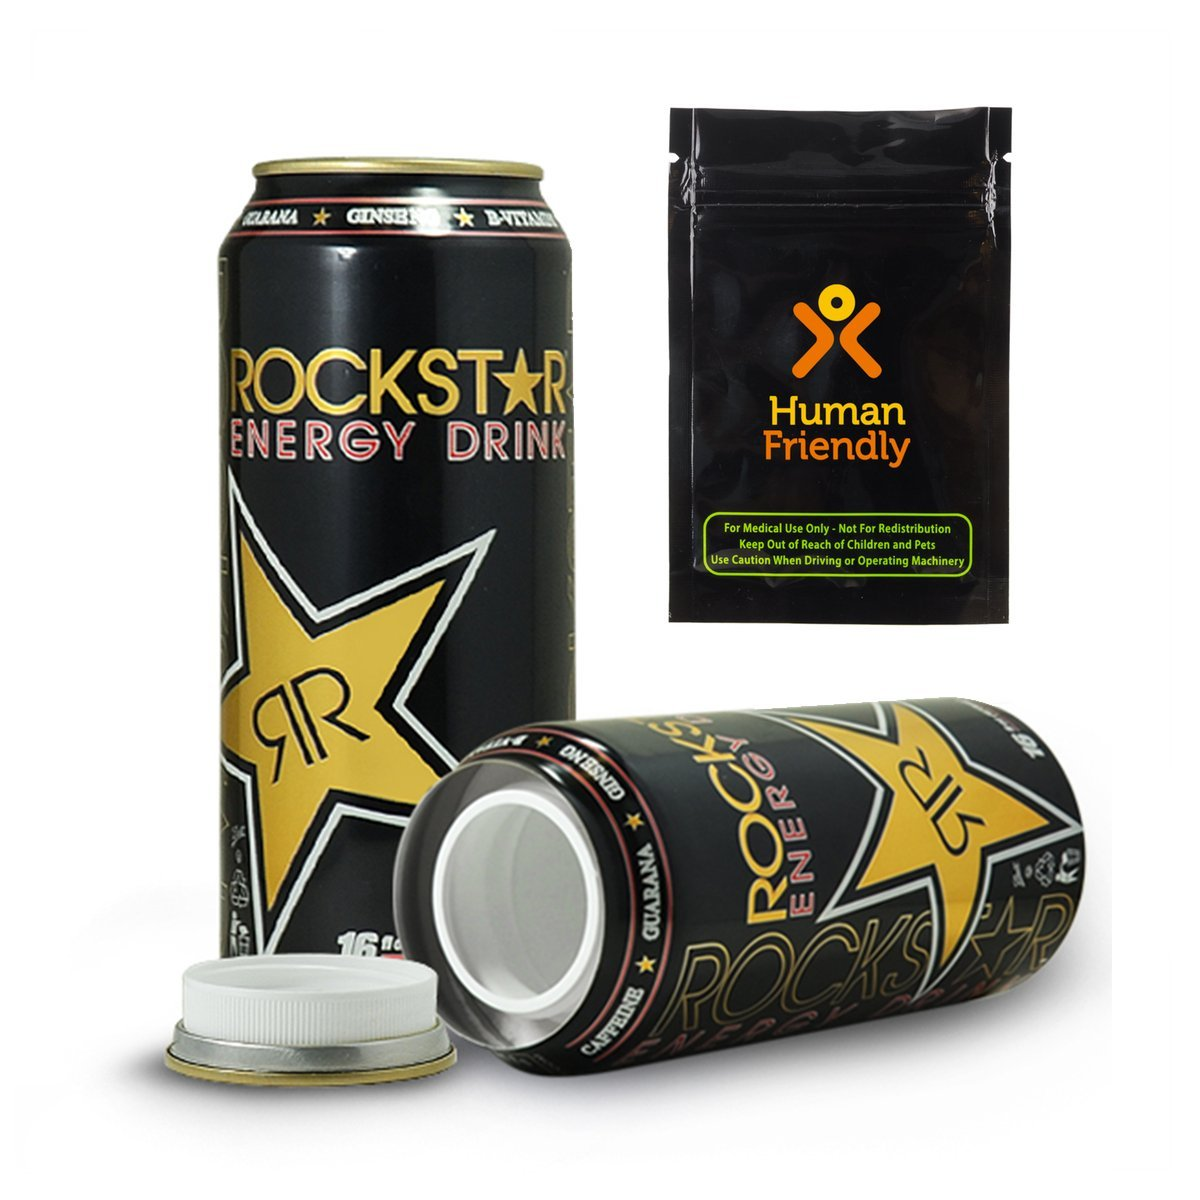 Rockstar Energy Drink DiversionセーフStash Can 16 oz w humanfriendly smell-proofバッグ B0753KRBW7